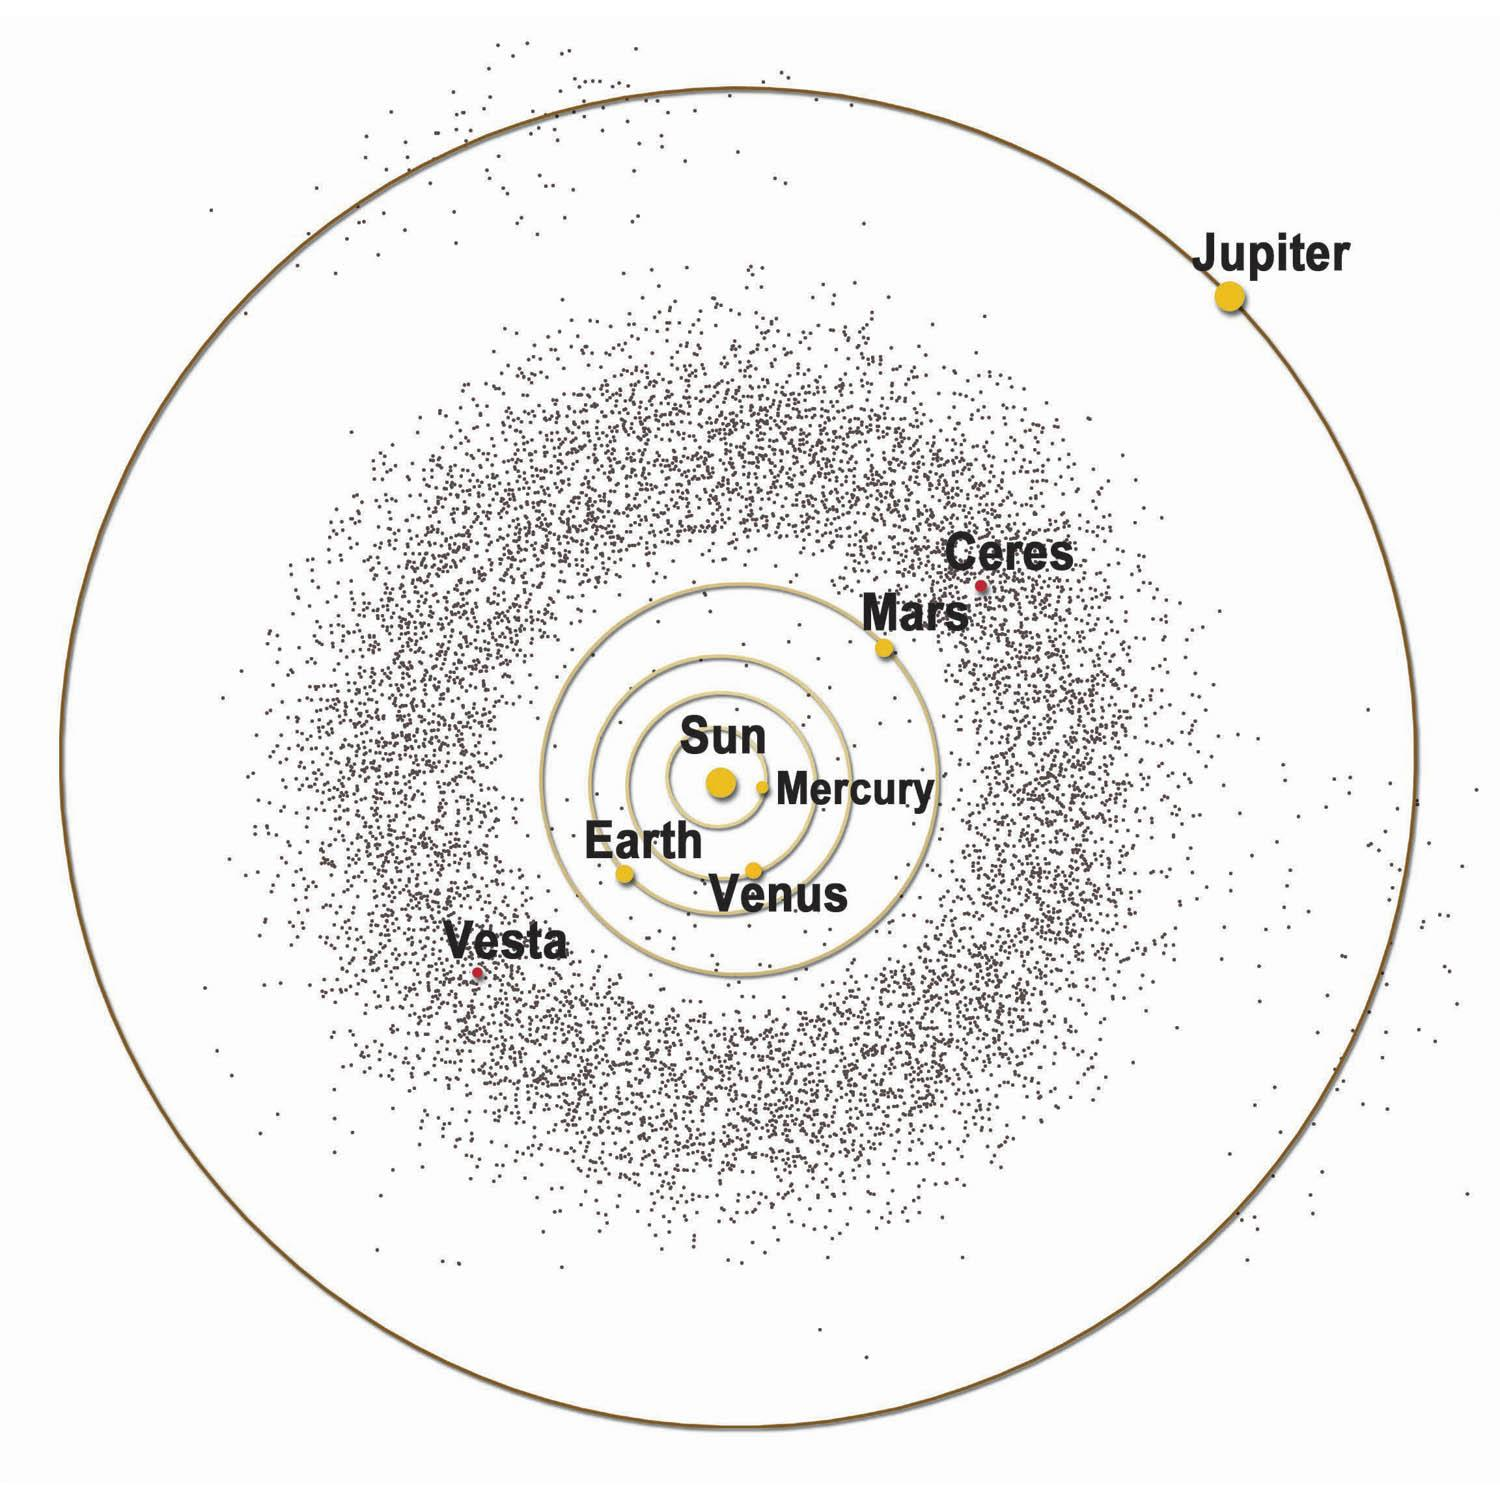 Picturing Our Solar System's Asteroid Belt